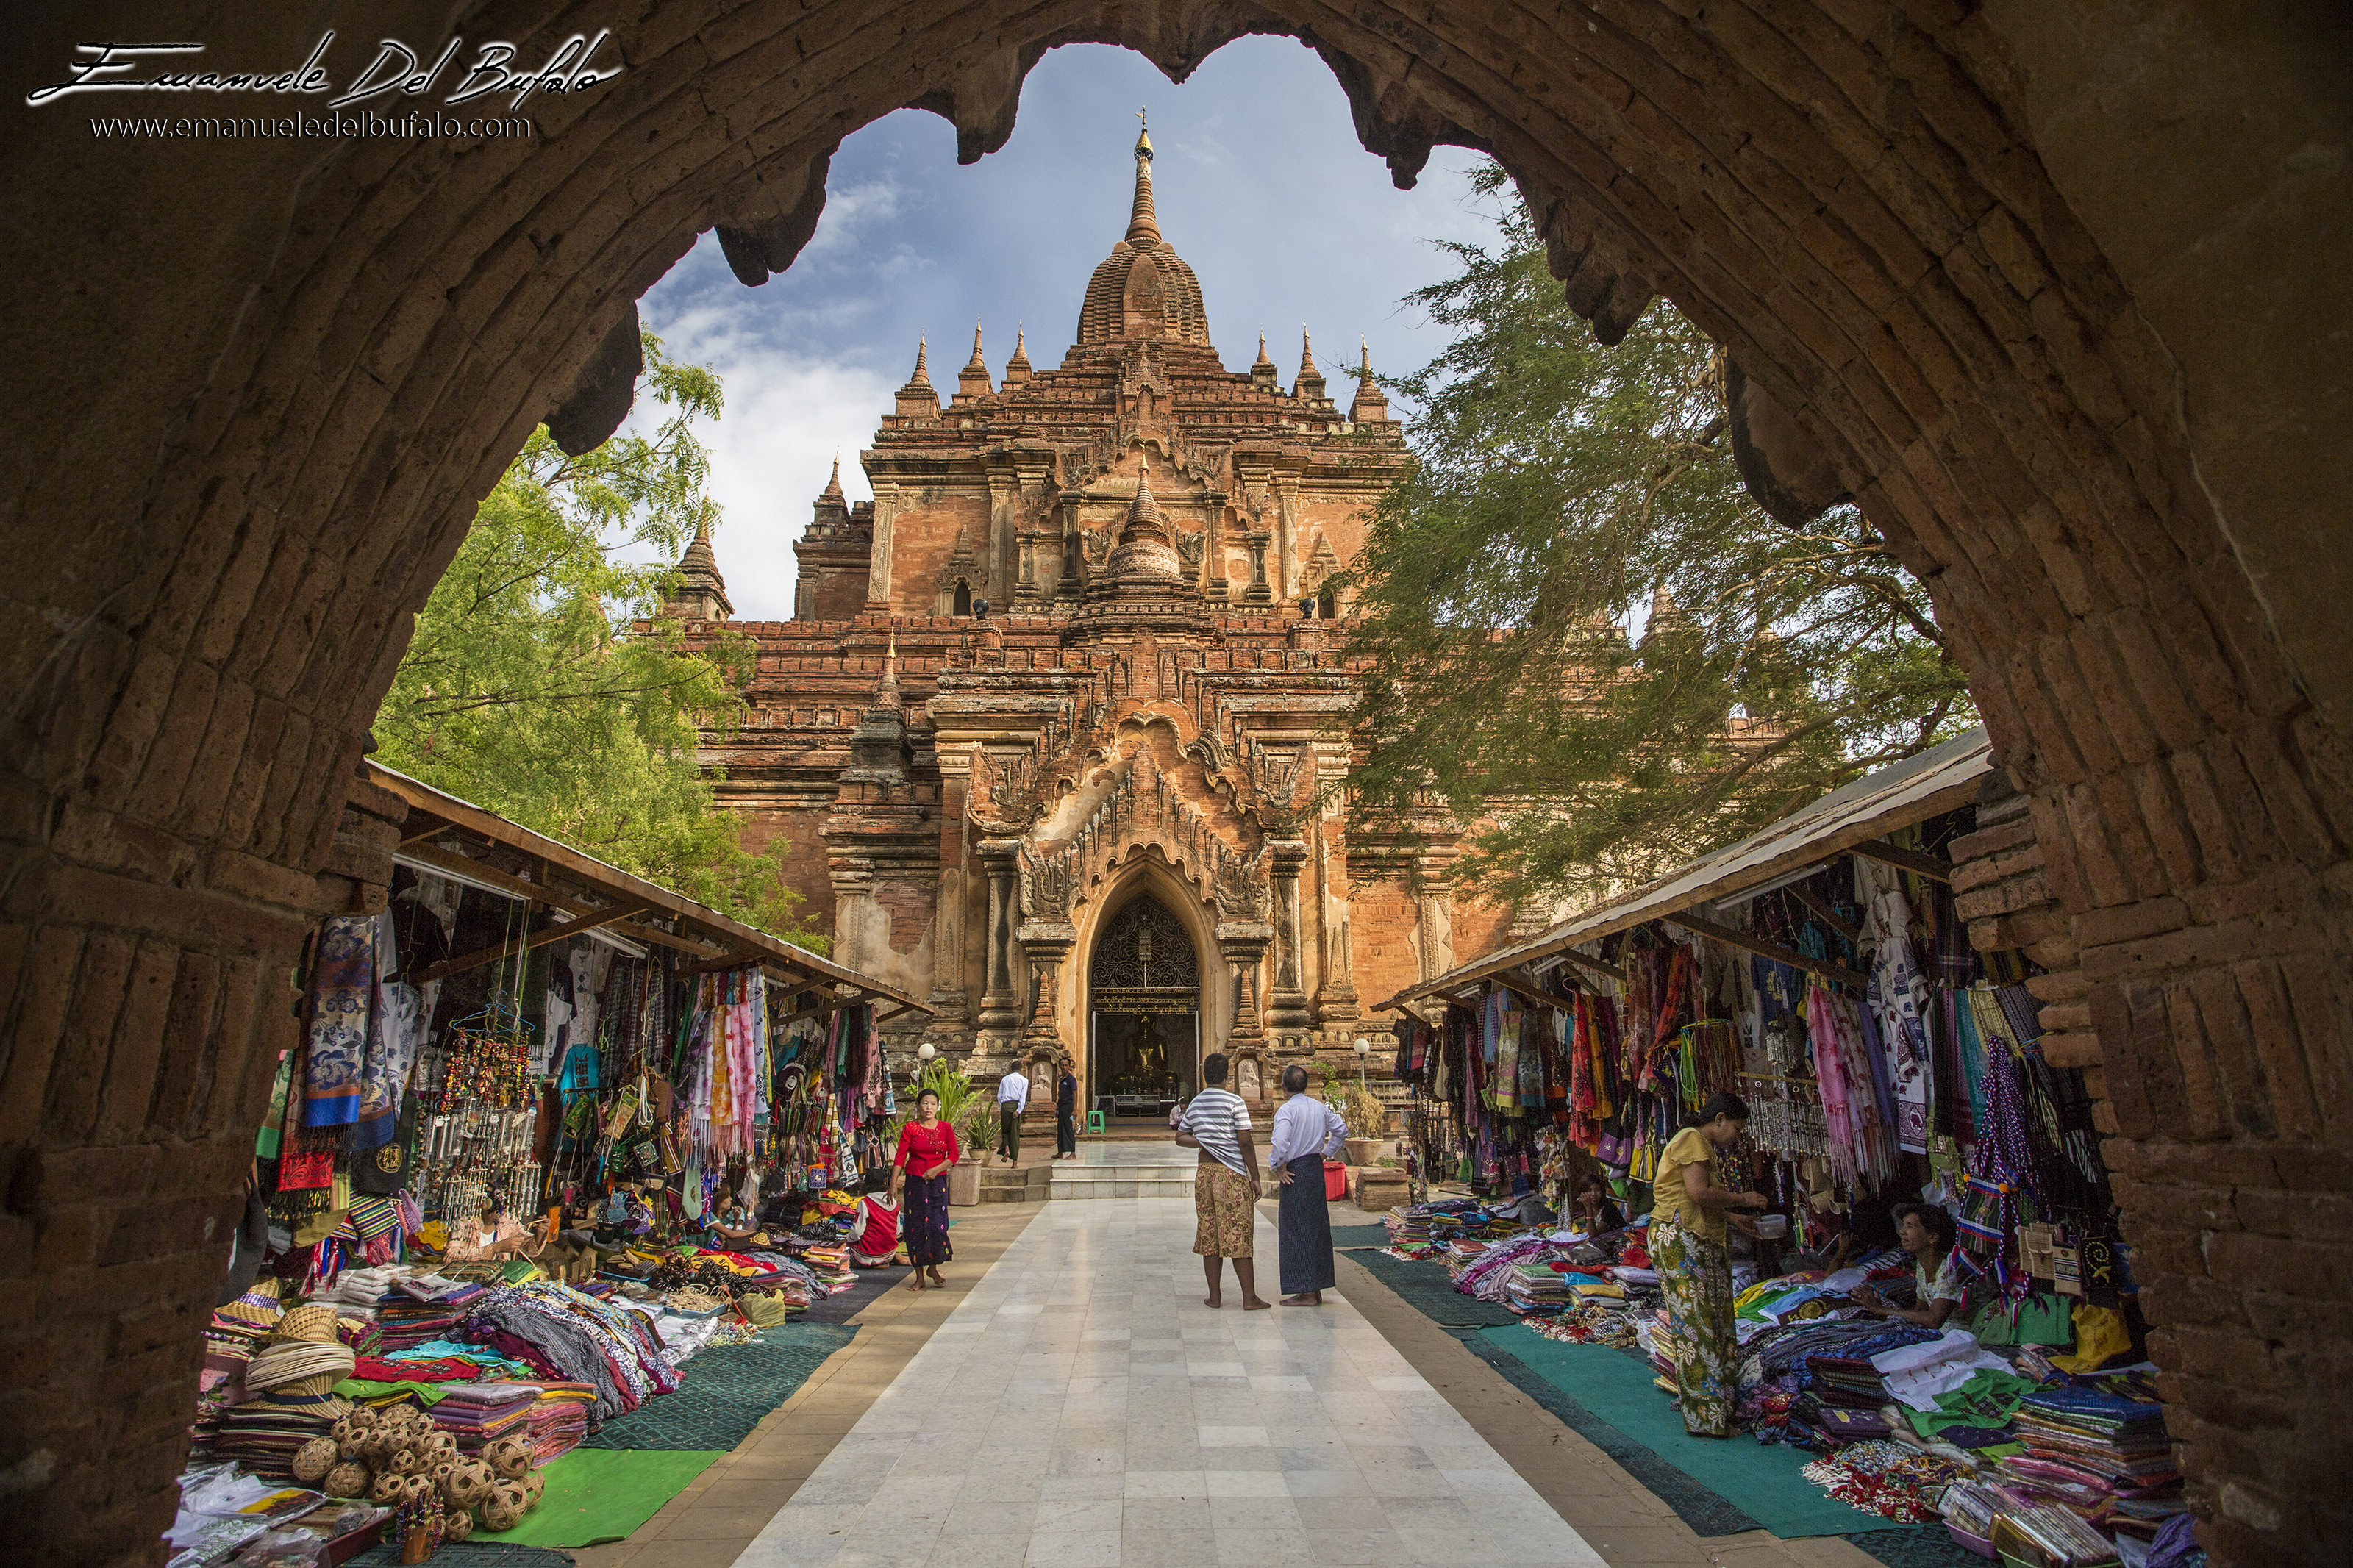 www.emanueledelbufalo.com #myanmar #burma #bagan #market #temple #the_long_term_traveler